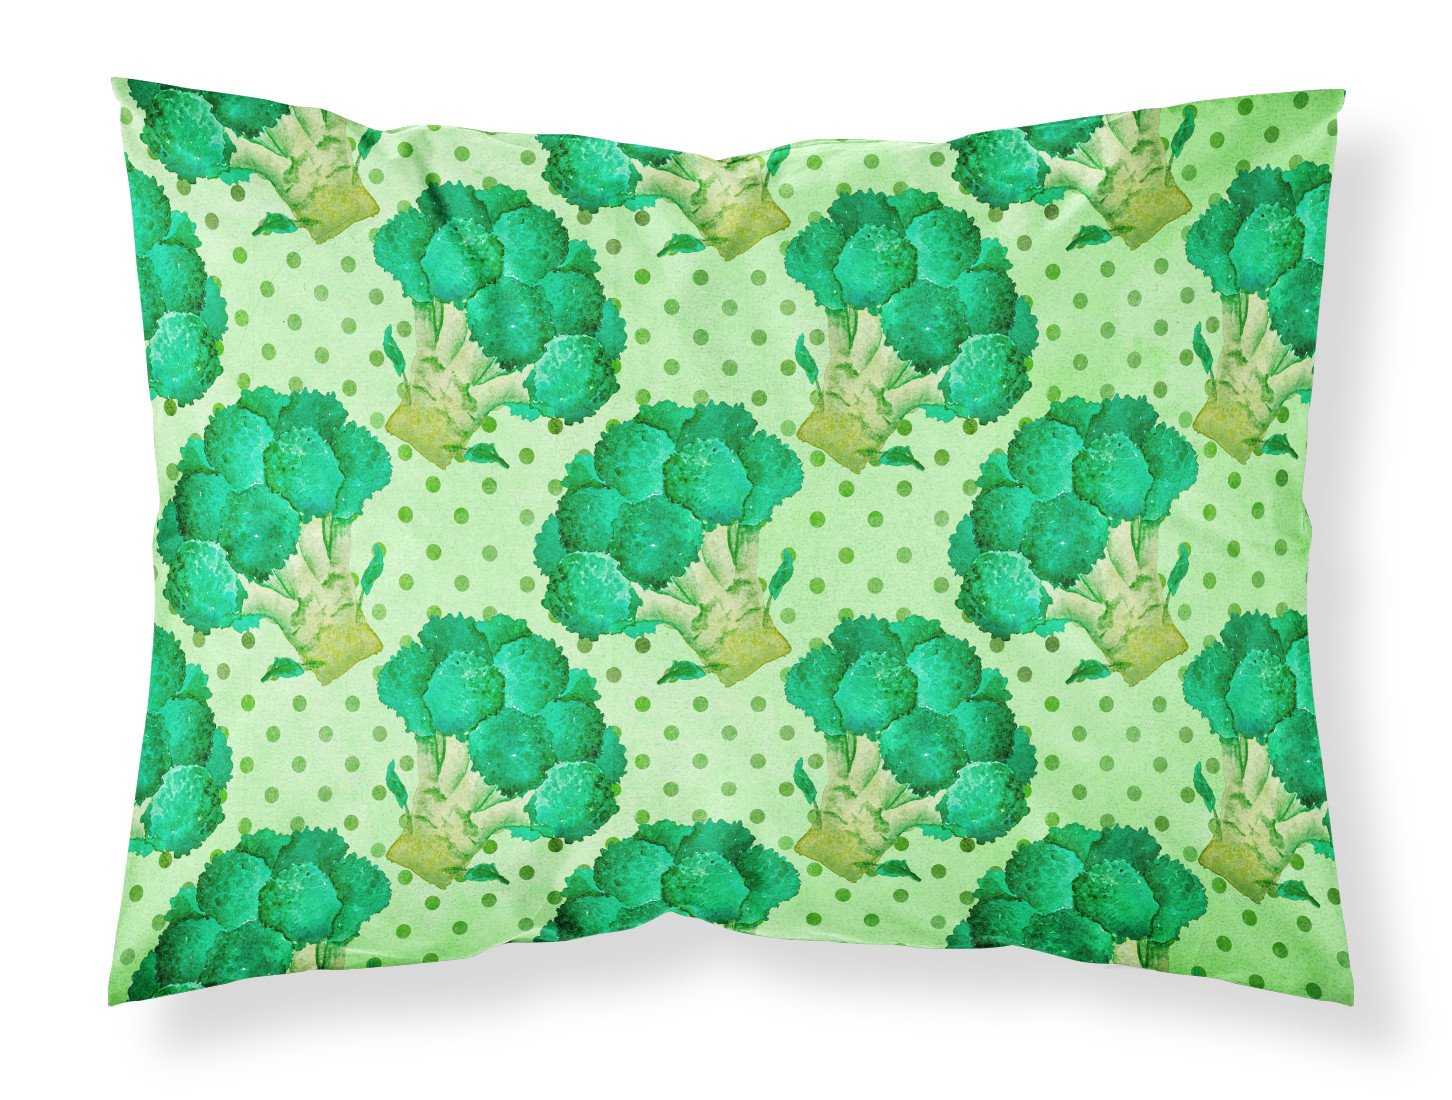 Watercolor Broccoli Fabric Standard Pillowcase BB7570PILLOWCASE by Caroline's Treasures